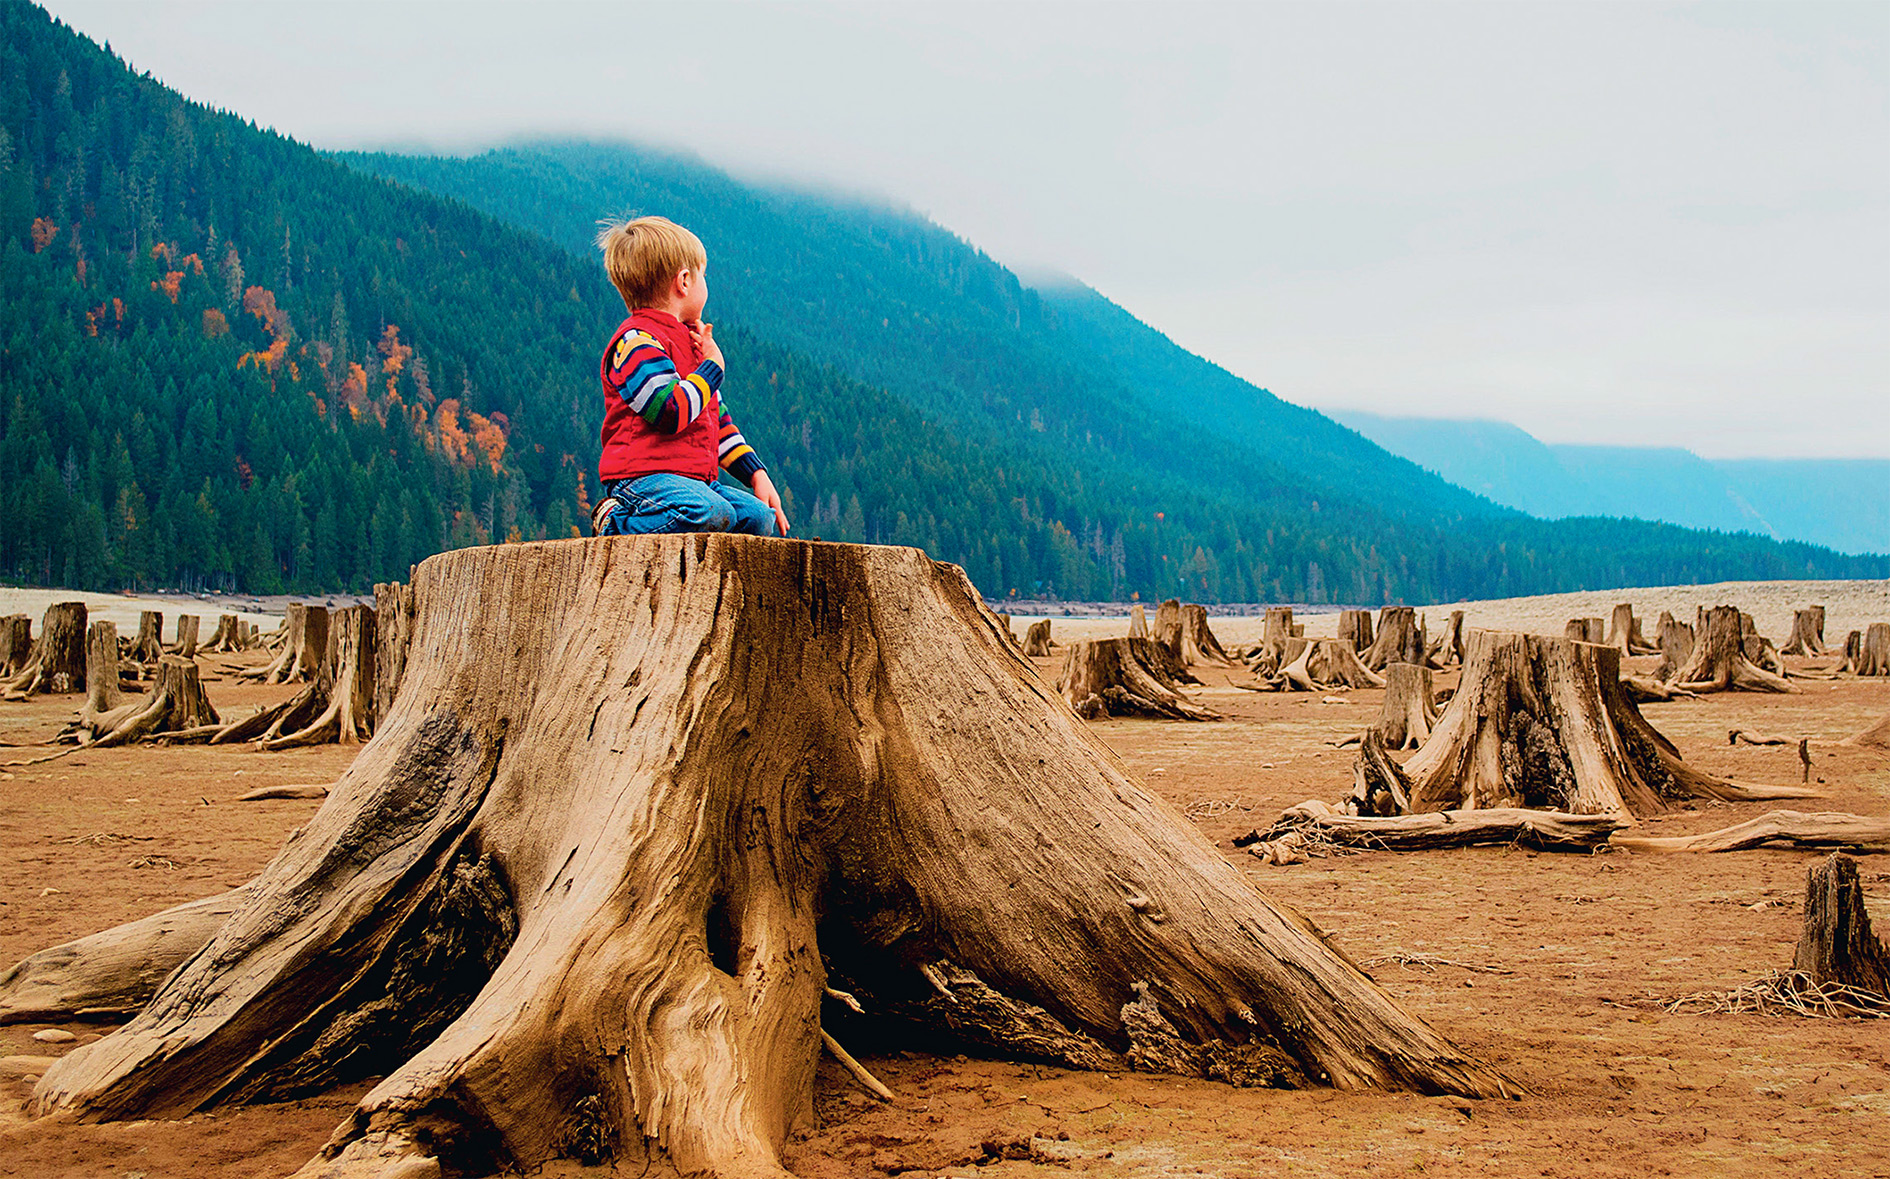 Stumped: a young boy surveys the remains of giant conifers on a mist-shrouded inlet in the US Pacific northwest.